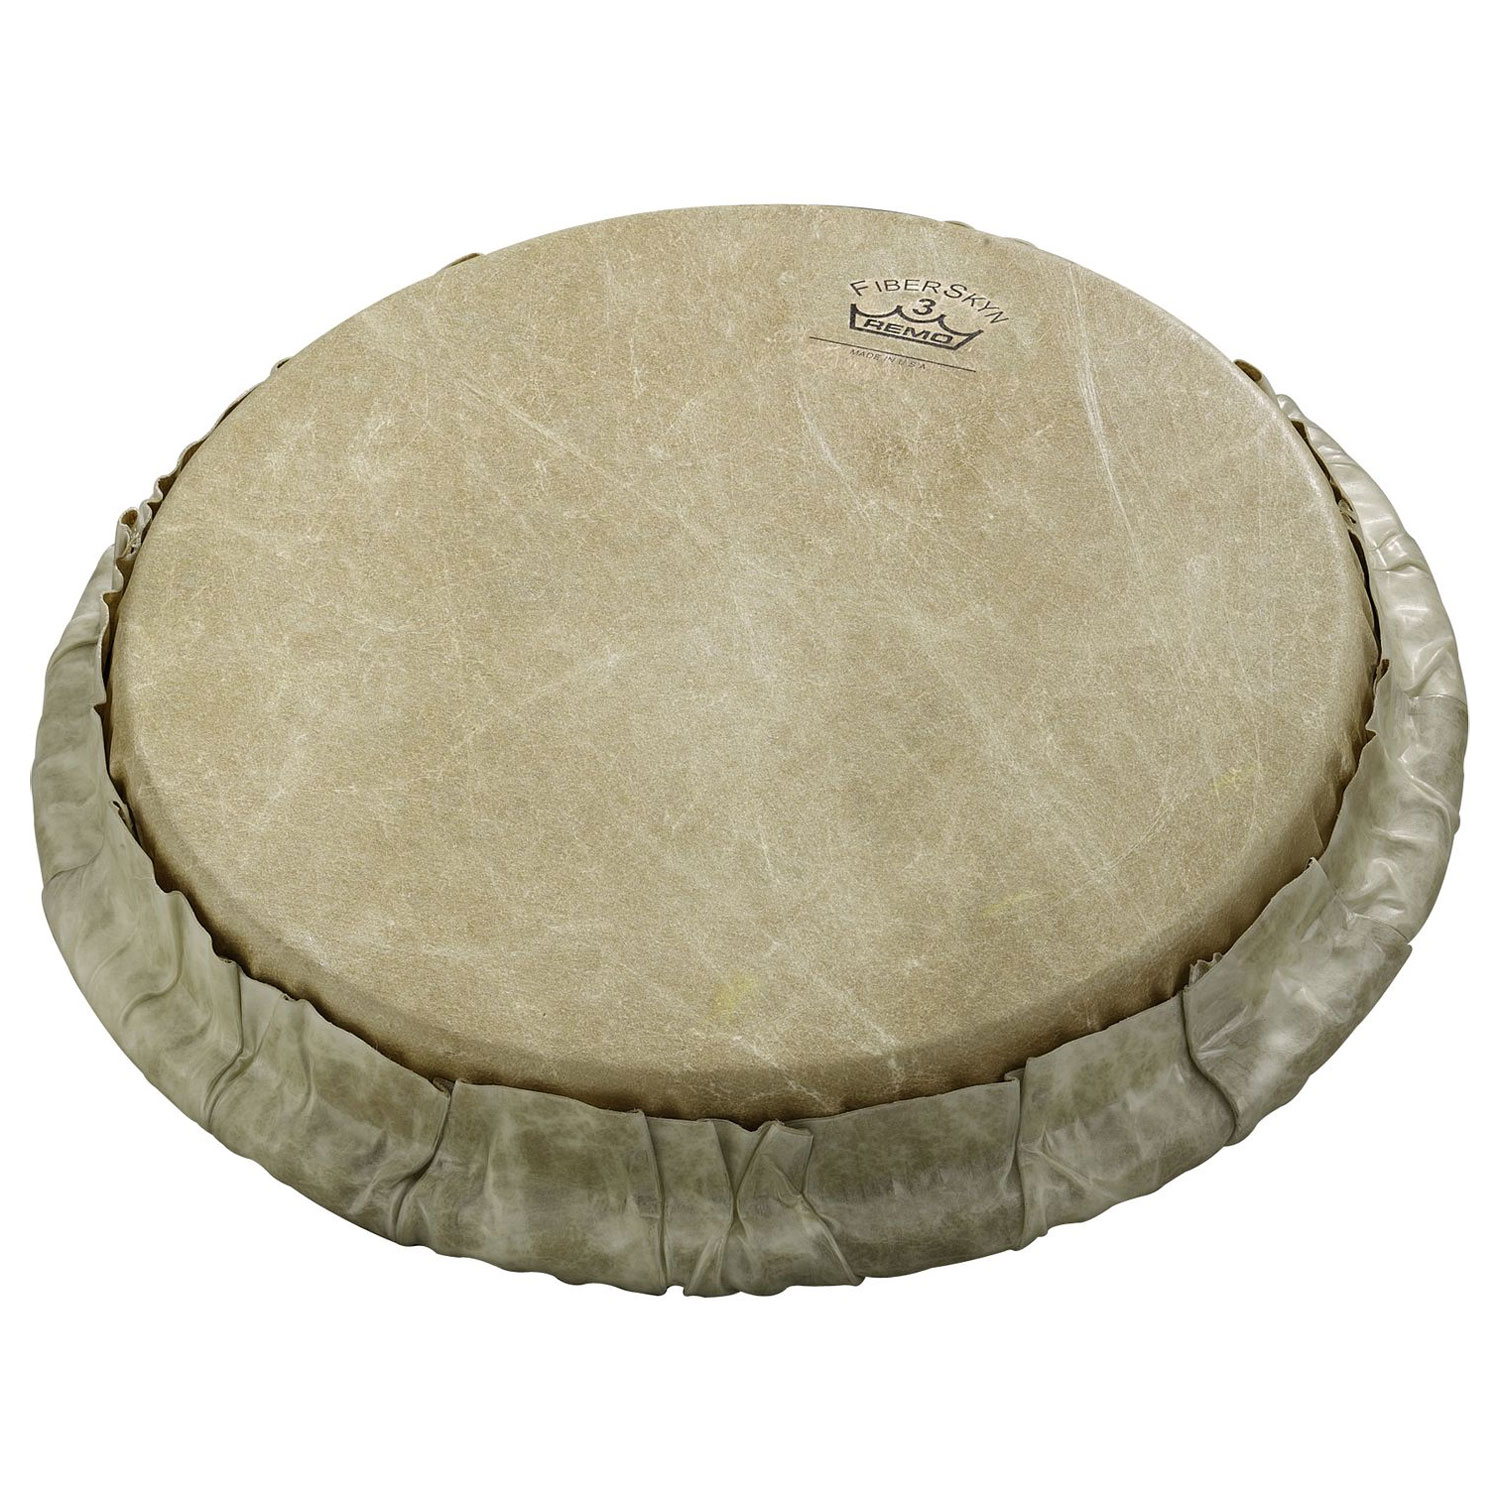 """Remo 7.15"""" Tucked Skyndeep Bongo Drum Head with Calfskin Graphic"""